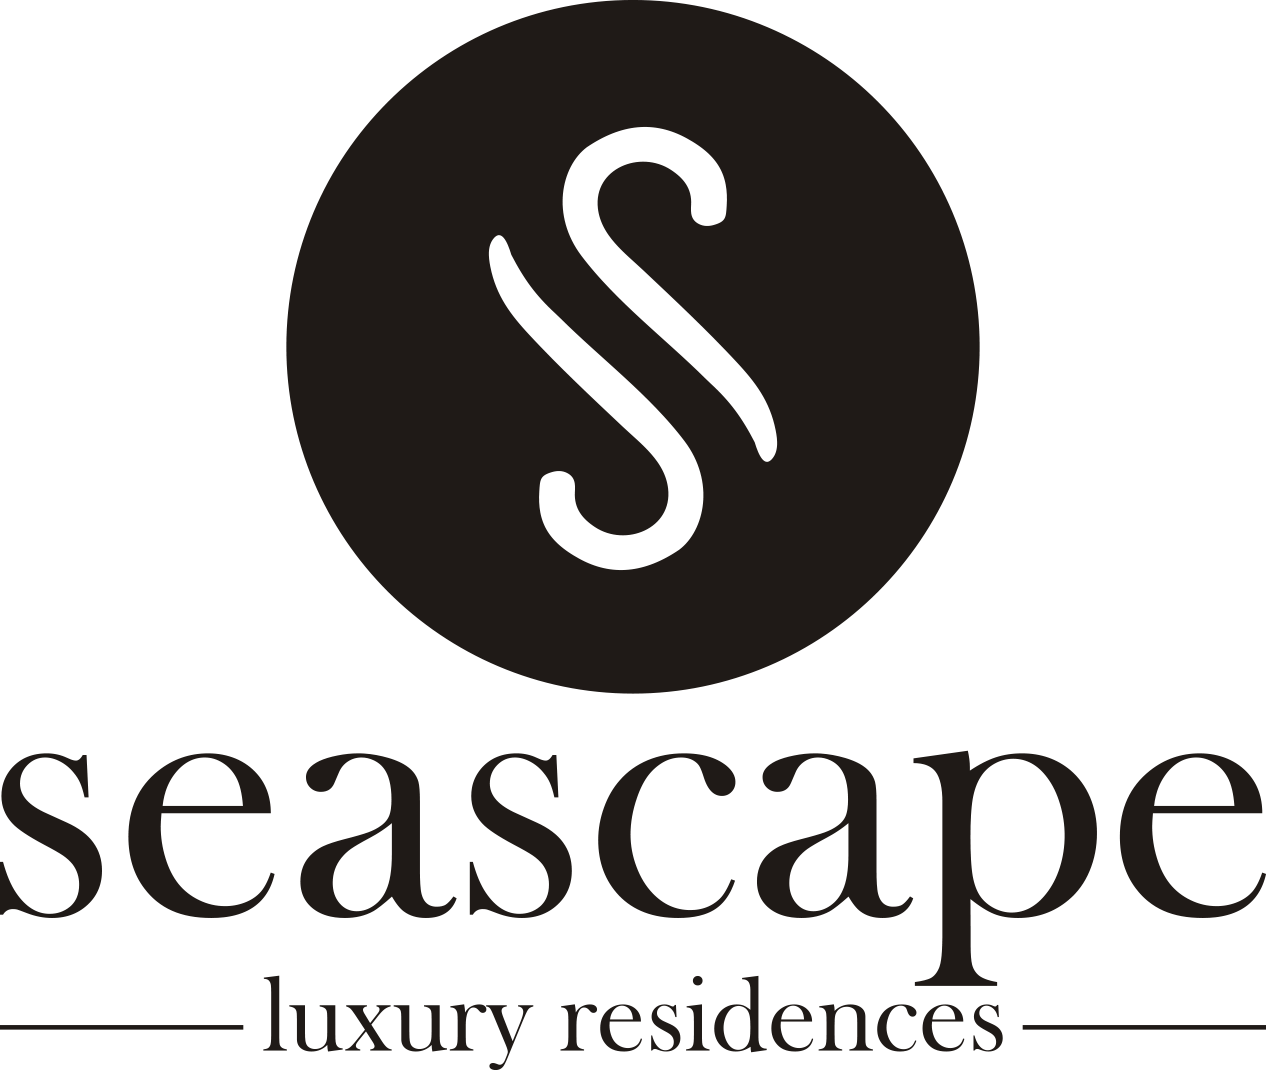 Seascape Luxury Residences